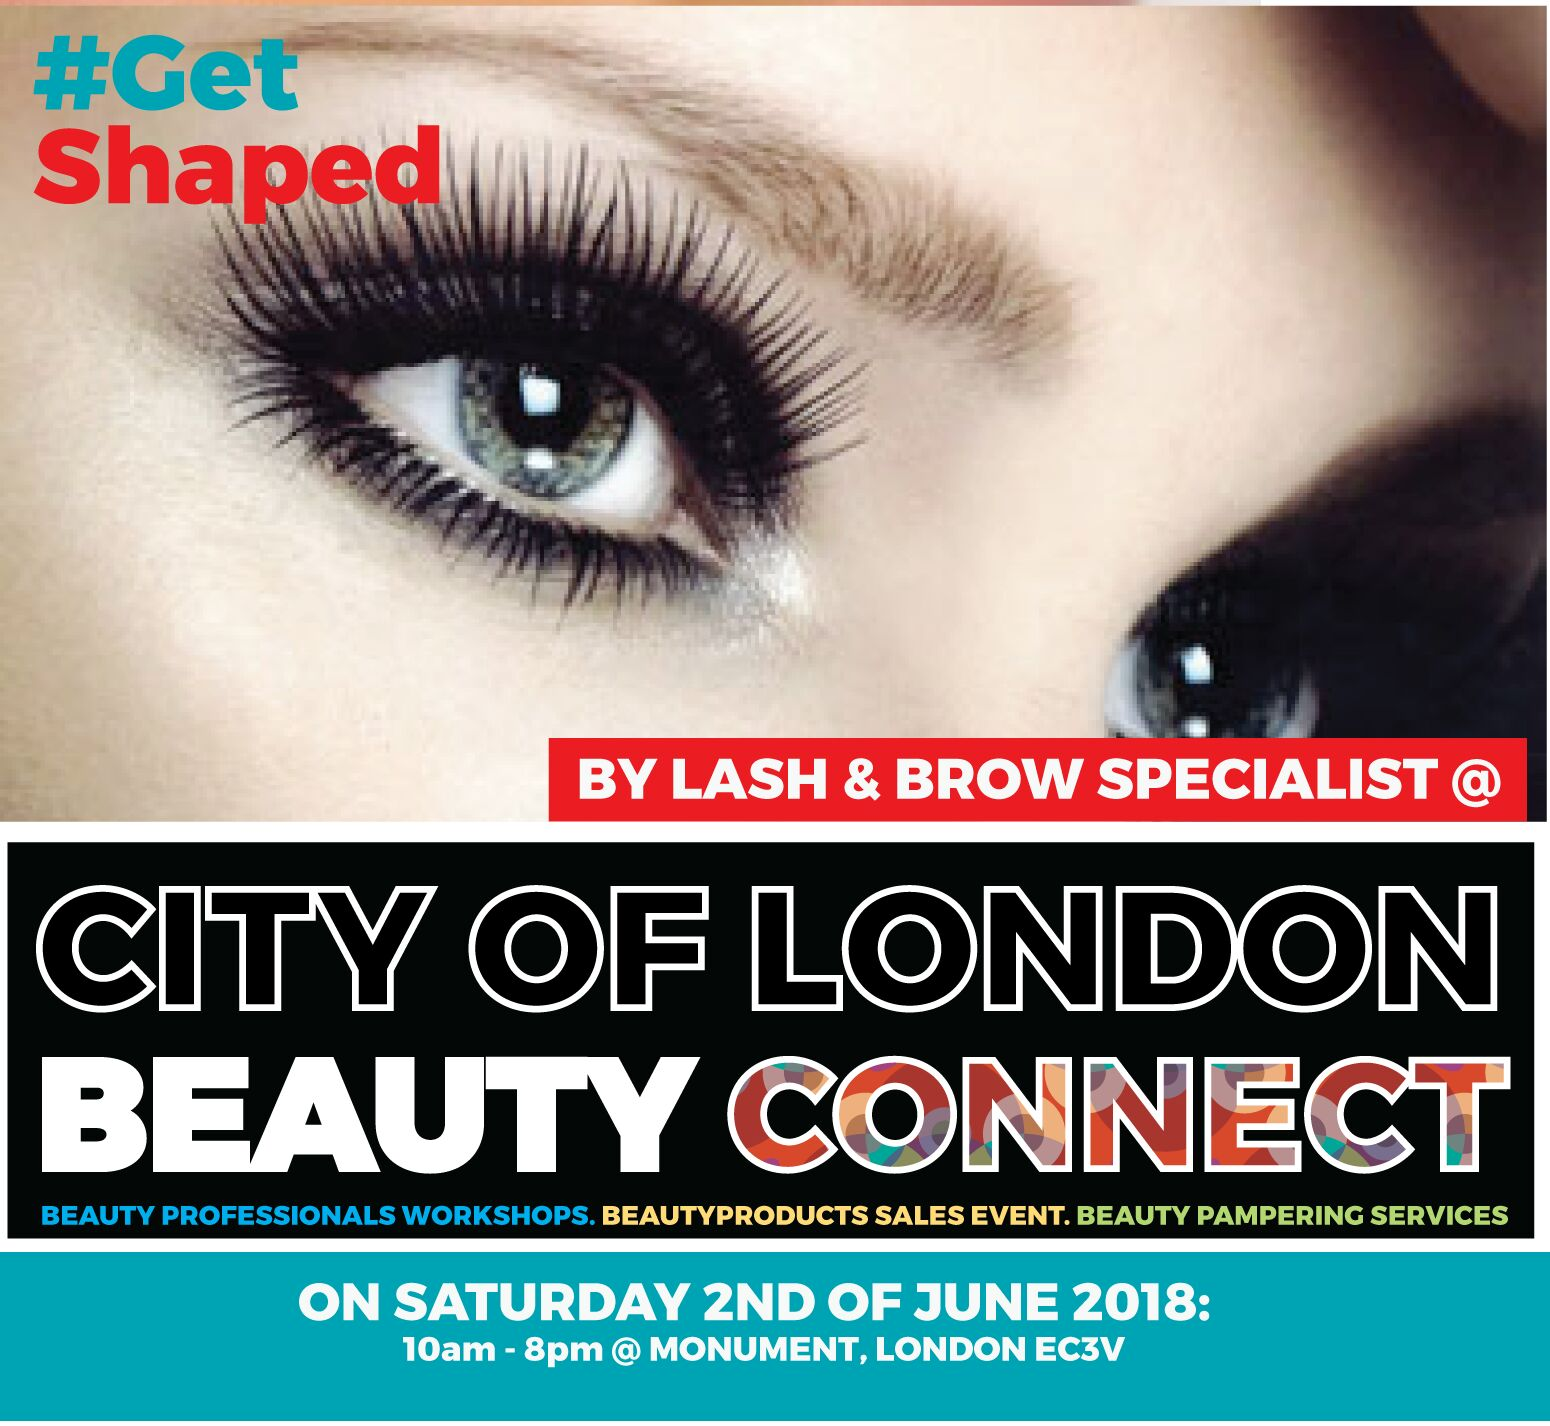 Be Pampered By Beauty Experts @ Monument City of London